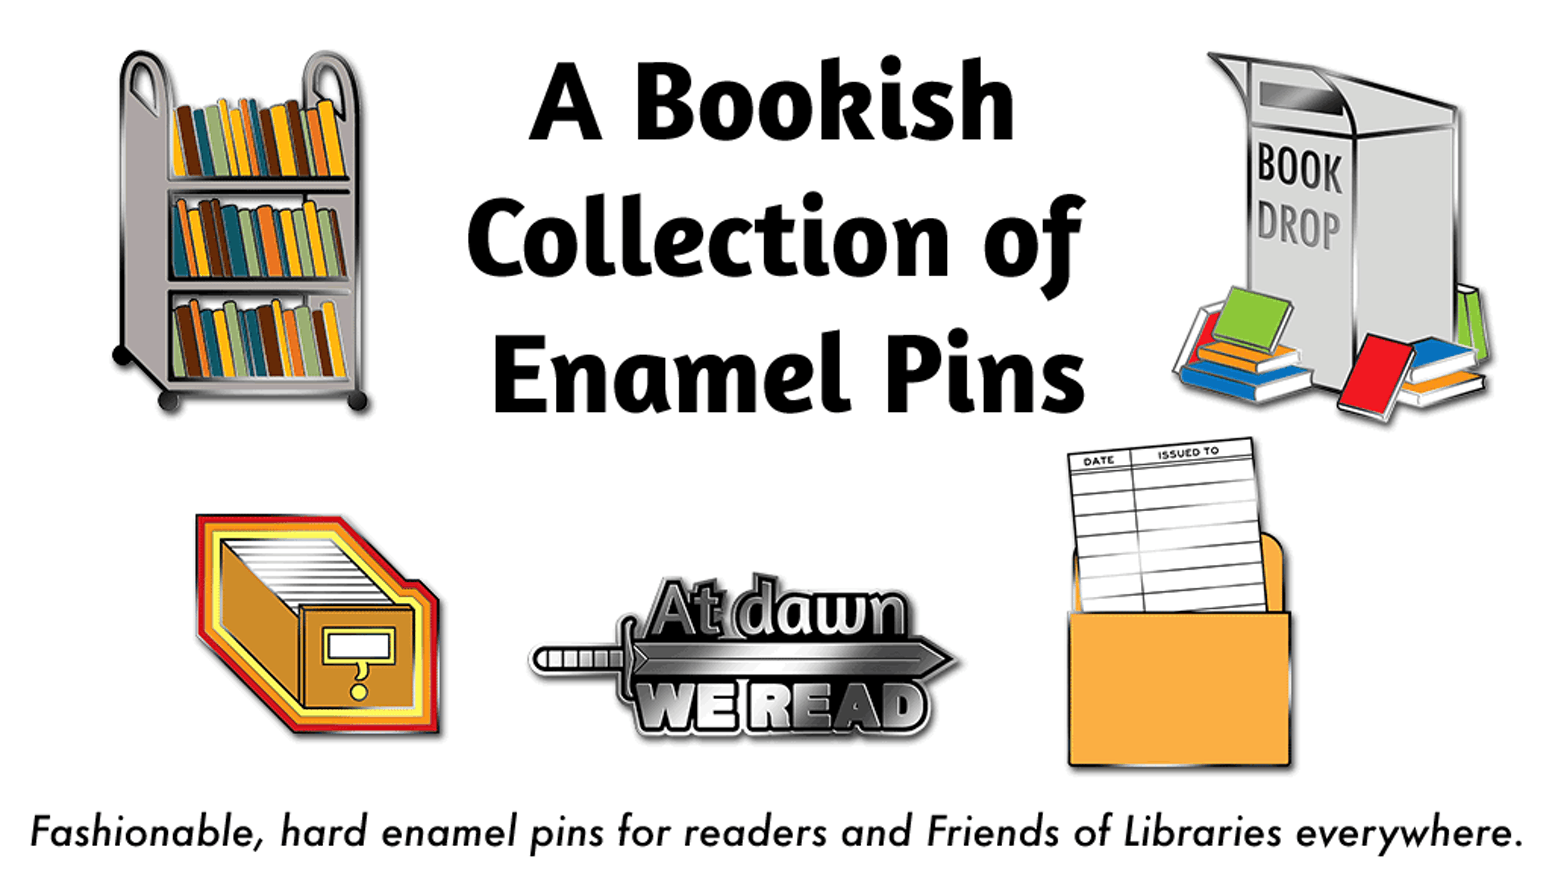 Fashionable, hard enamel pins for readers and Friends of Libraries everywhere.